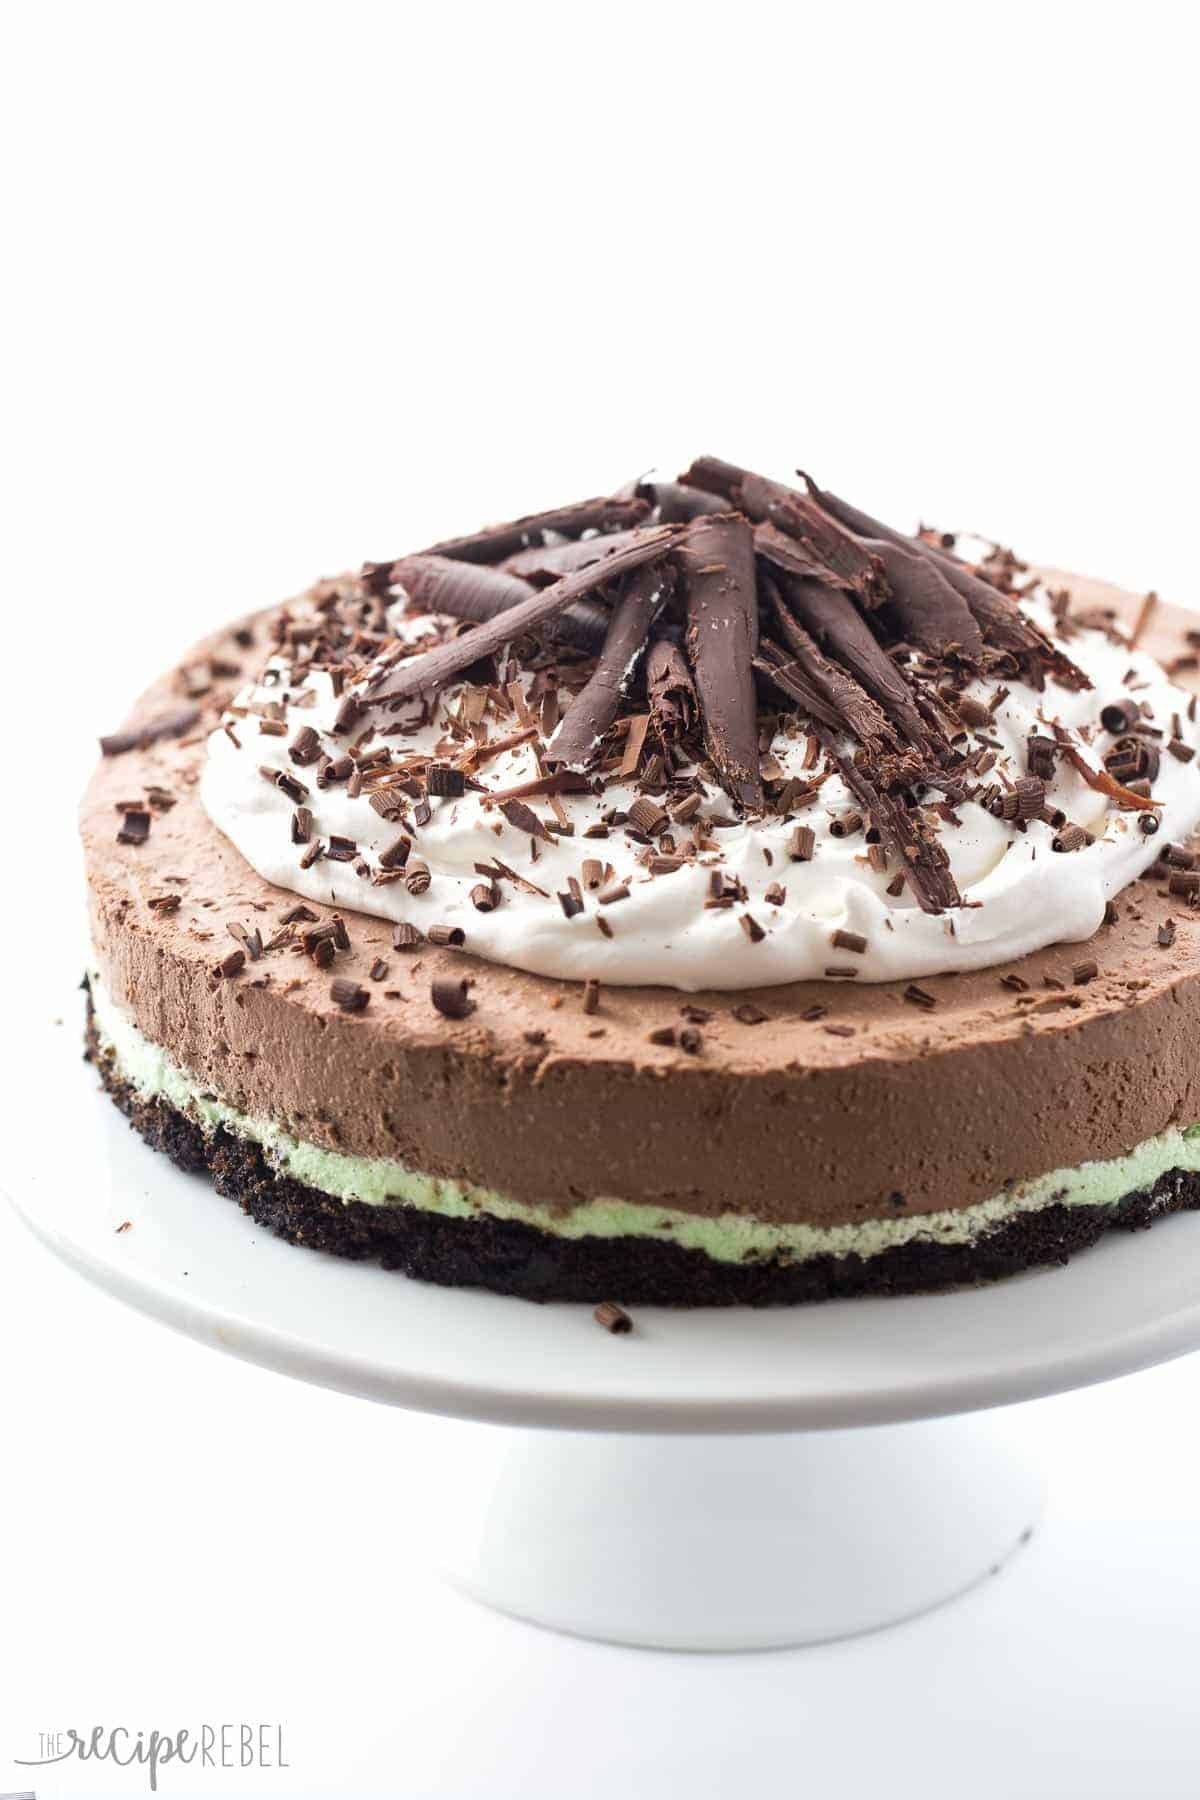 ... no bake chocolate cheesecake filling! Top it with whipped cream and